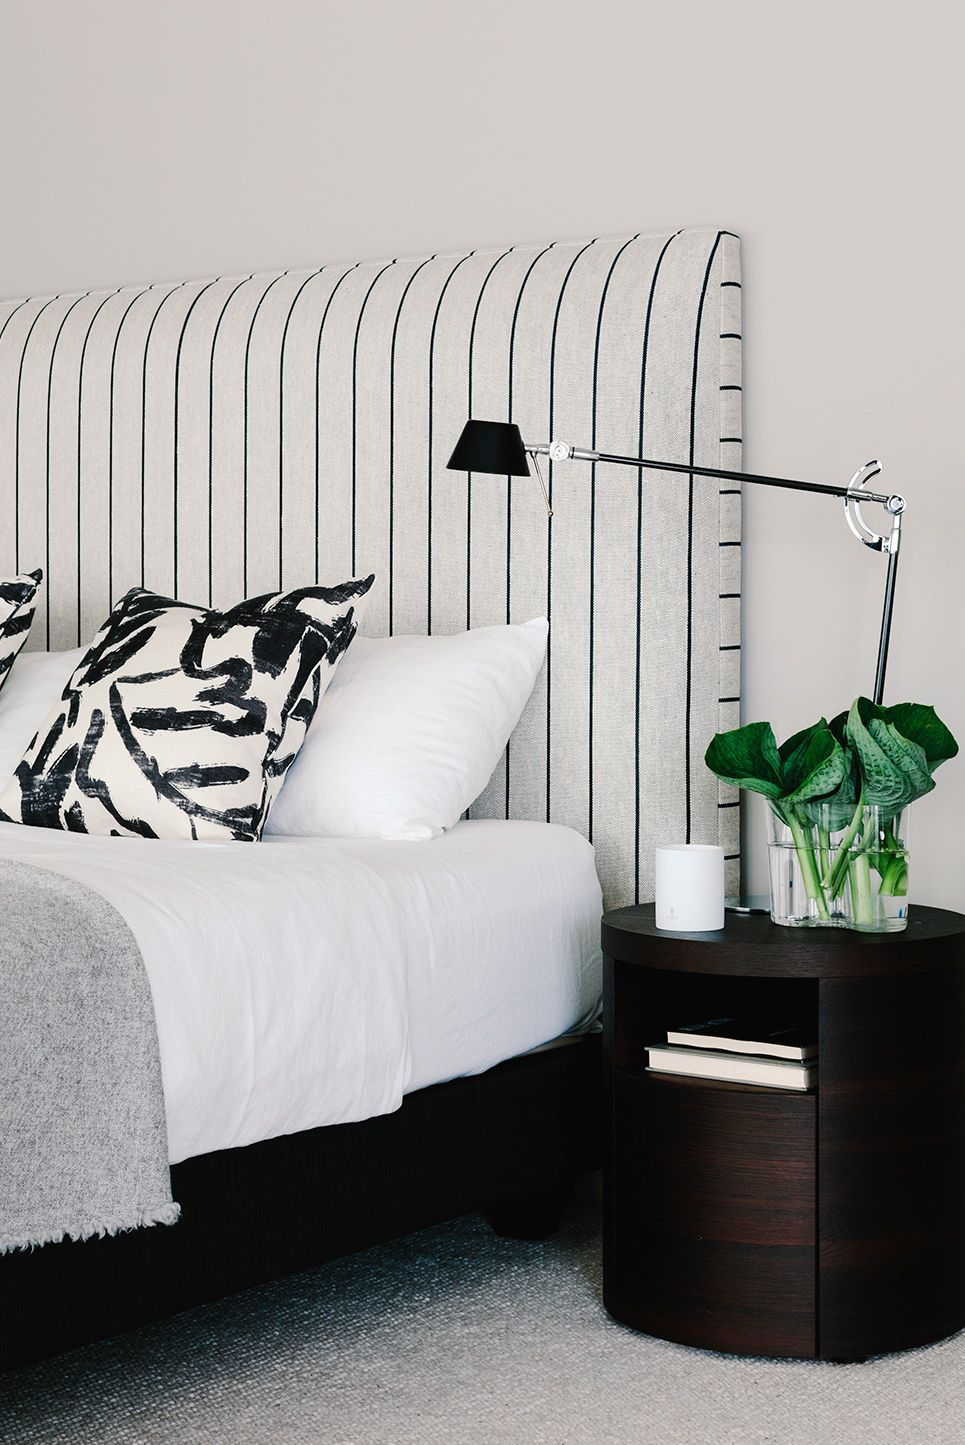 Black And White Aesthetic Room Decor Home Improvement Our Black And White Line Art Use The Minimalist Aesthetic Wall Decor Style To Outline The Beauty Of Modern Women